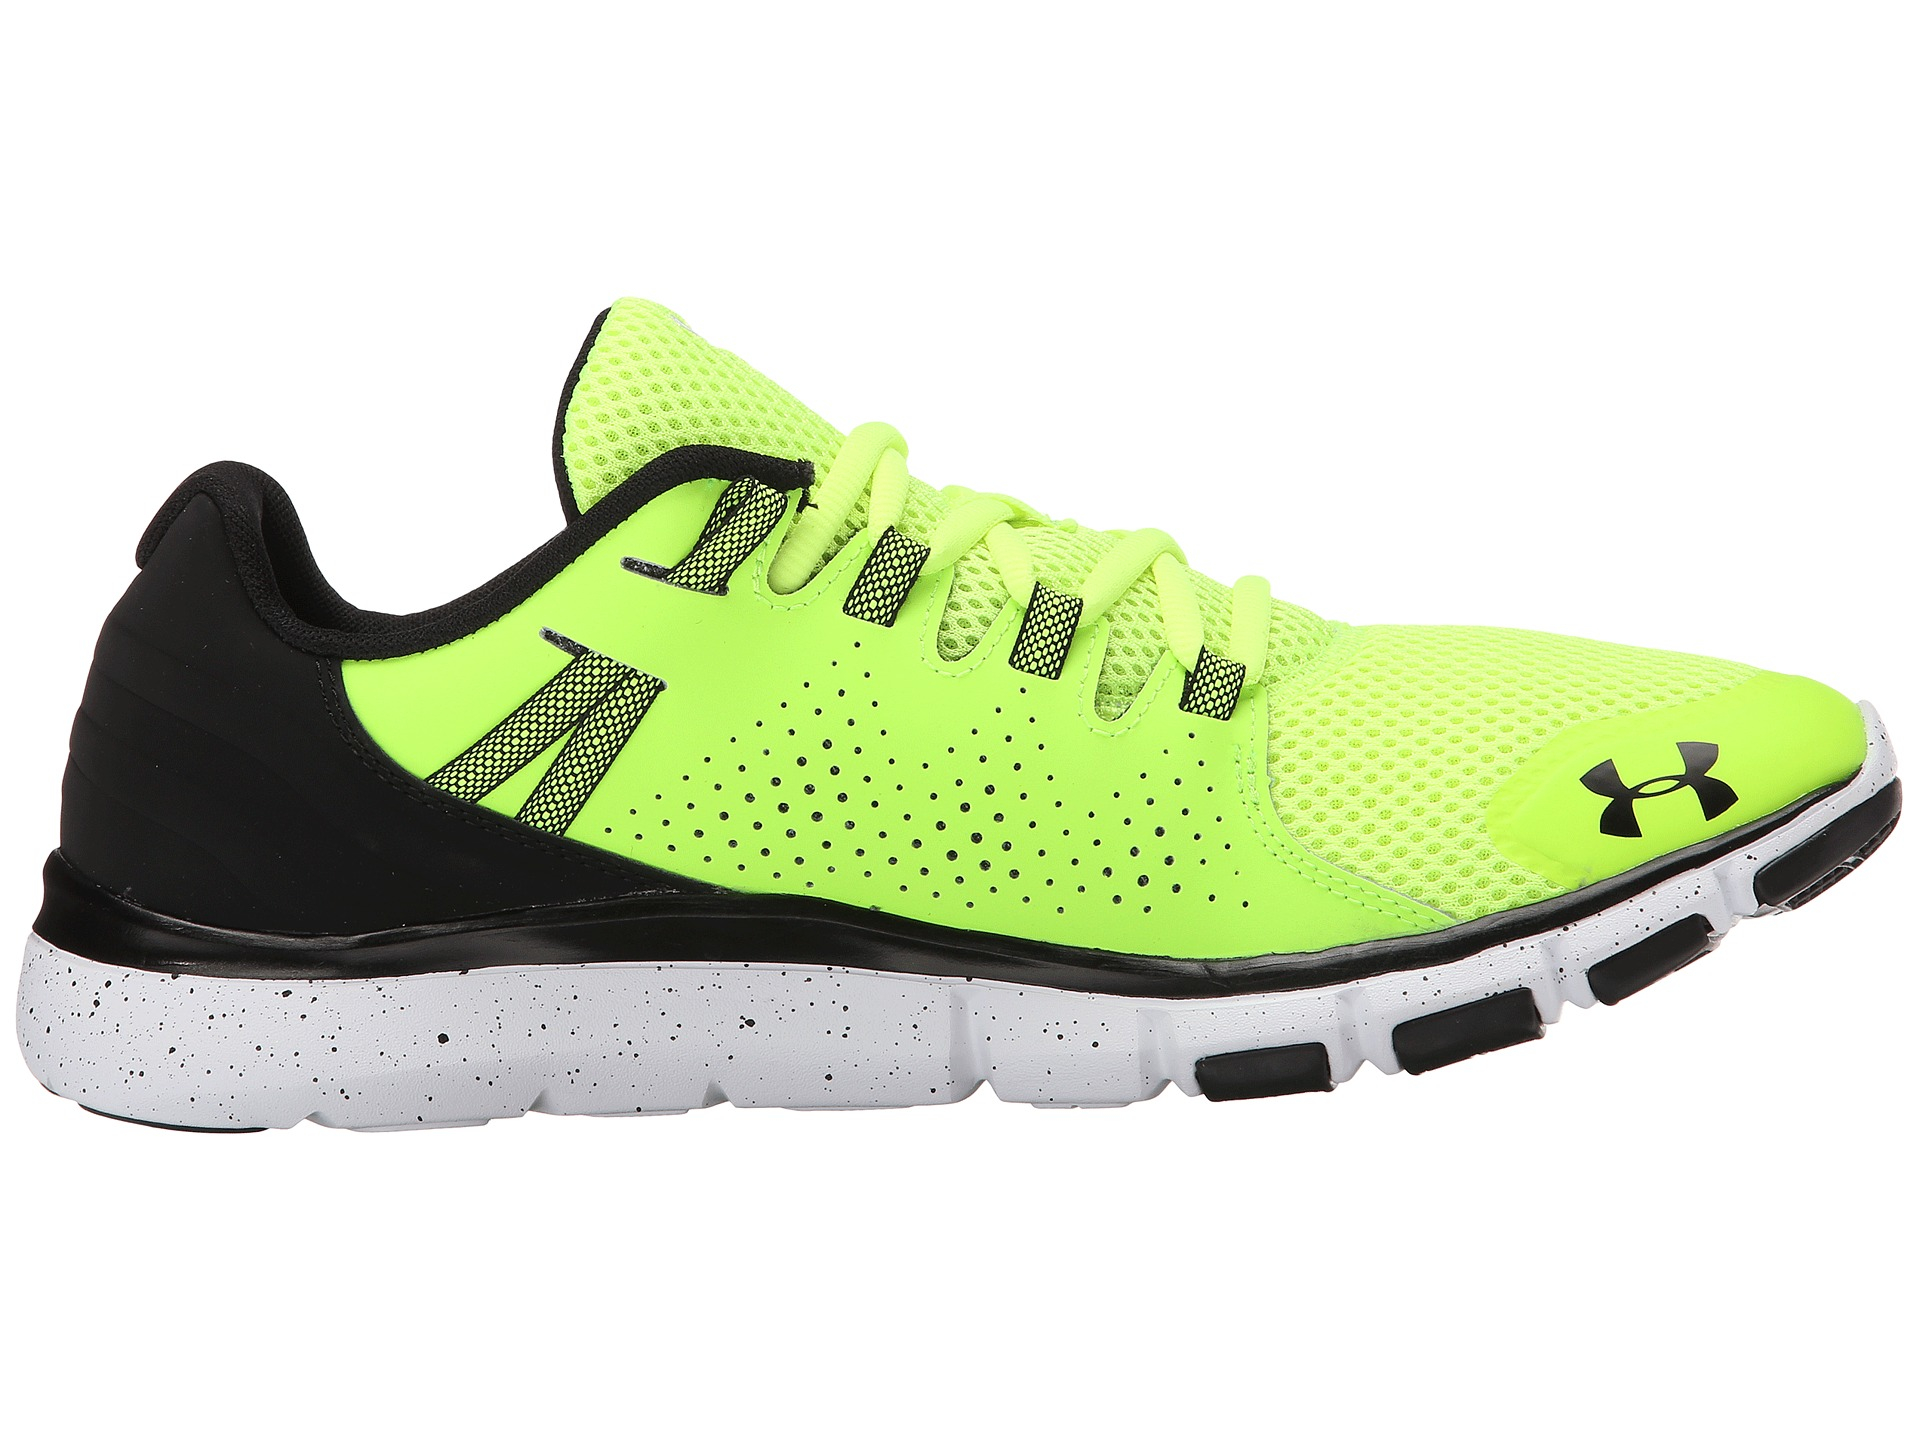 Lyst - Under Armour Ua Micro G™ Limitless Tr in Green for Men 9956461ad298